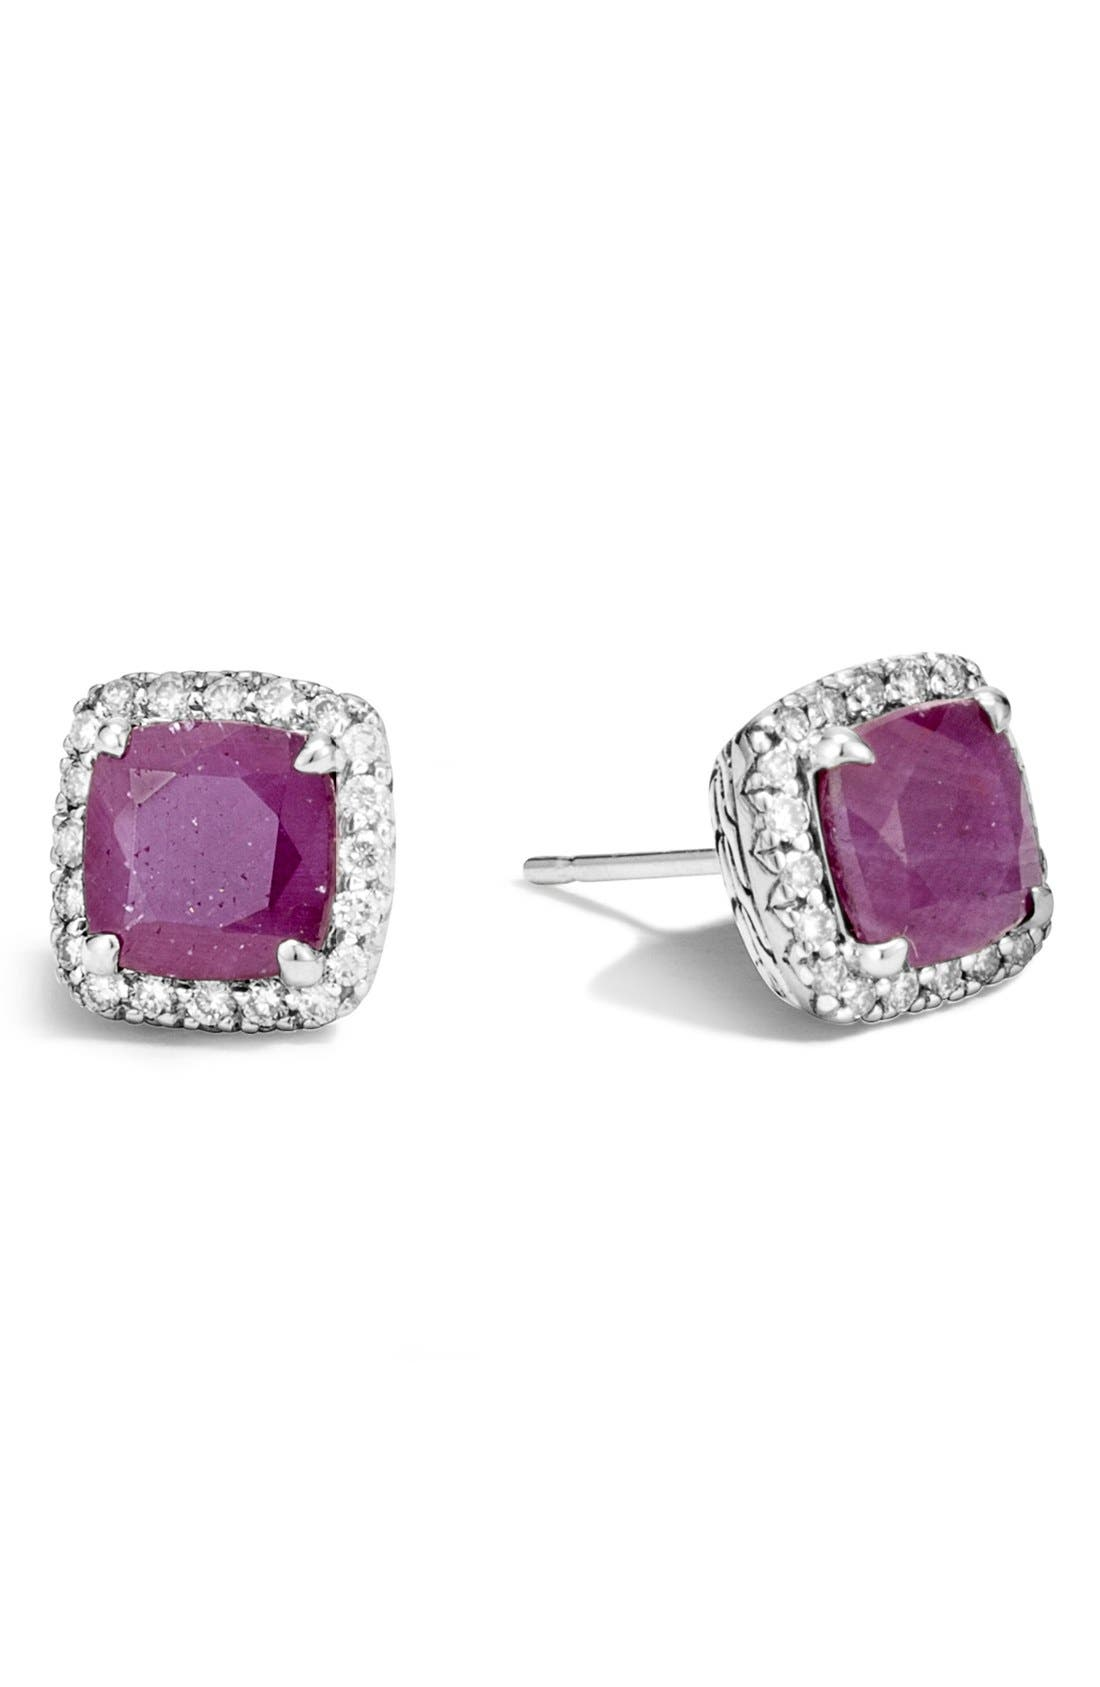 JOHN HARDY Classic Chain - Batu Precious Stone & Pavé Diamond Stud Earrings